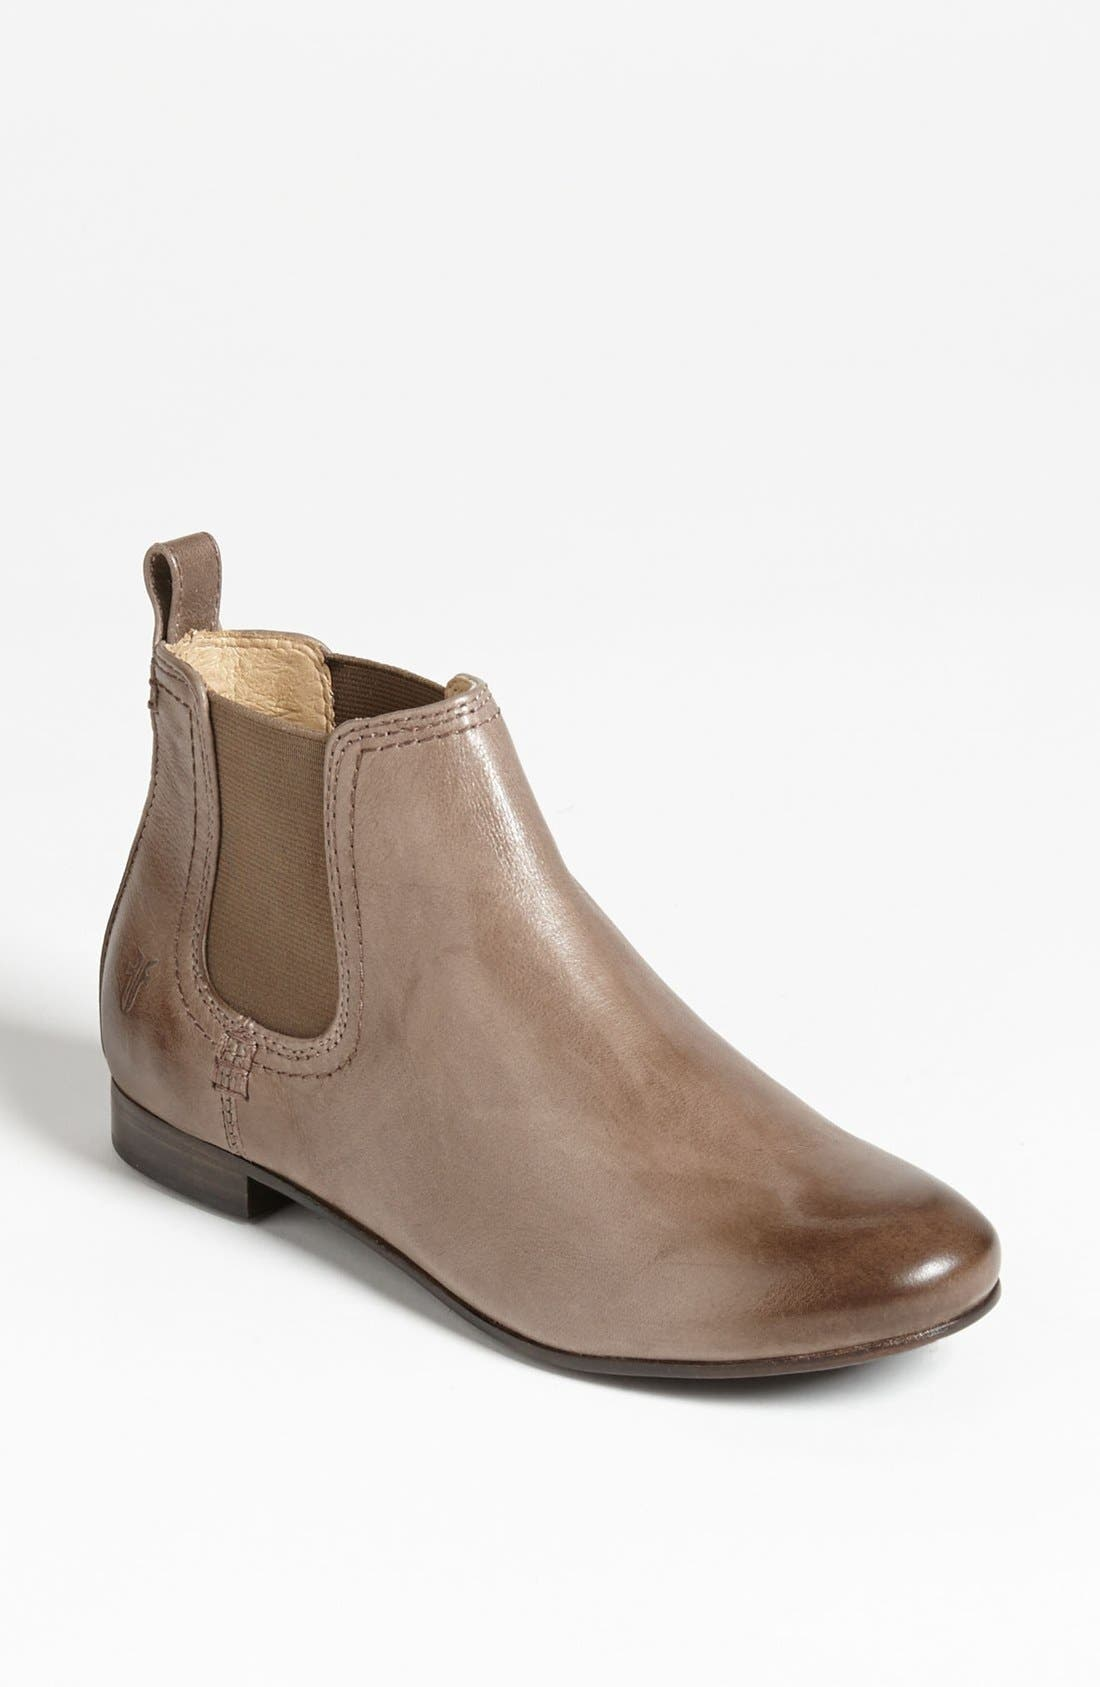 Alternate Image 1 Selected - Frye 'Jillian' Chelsea Boot